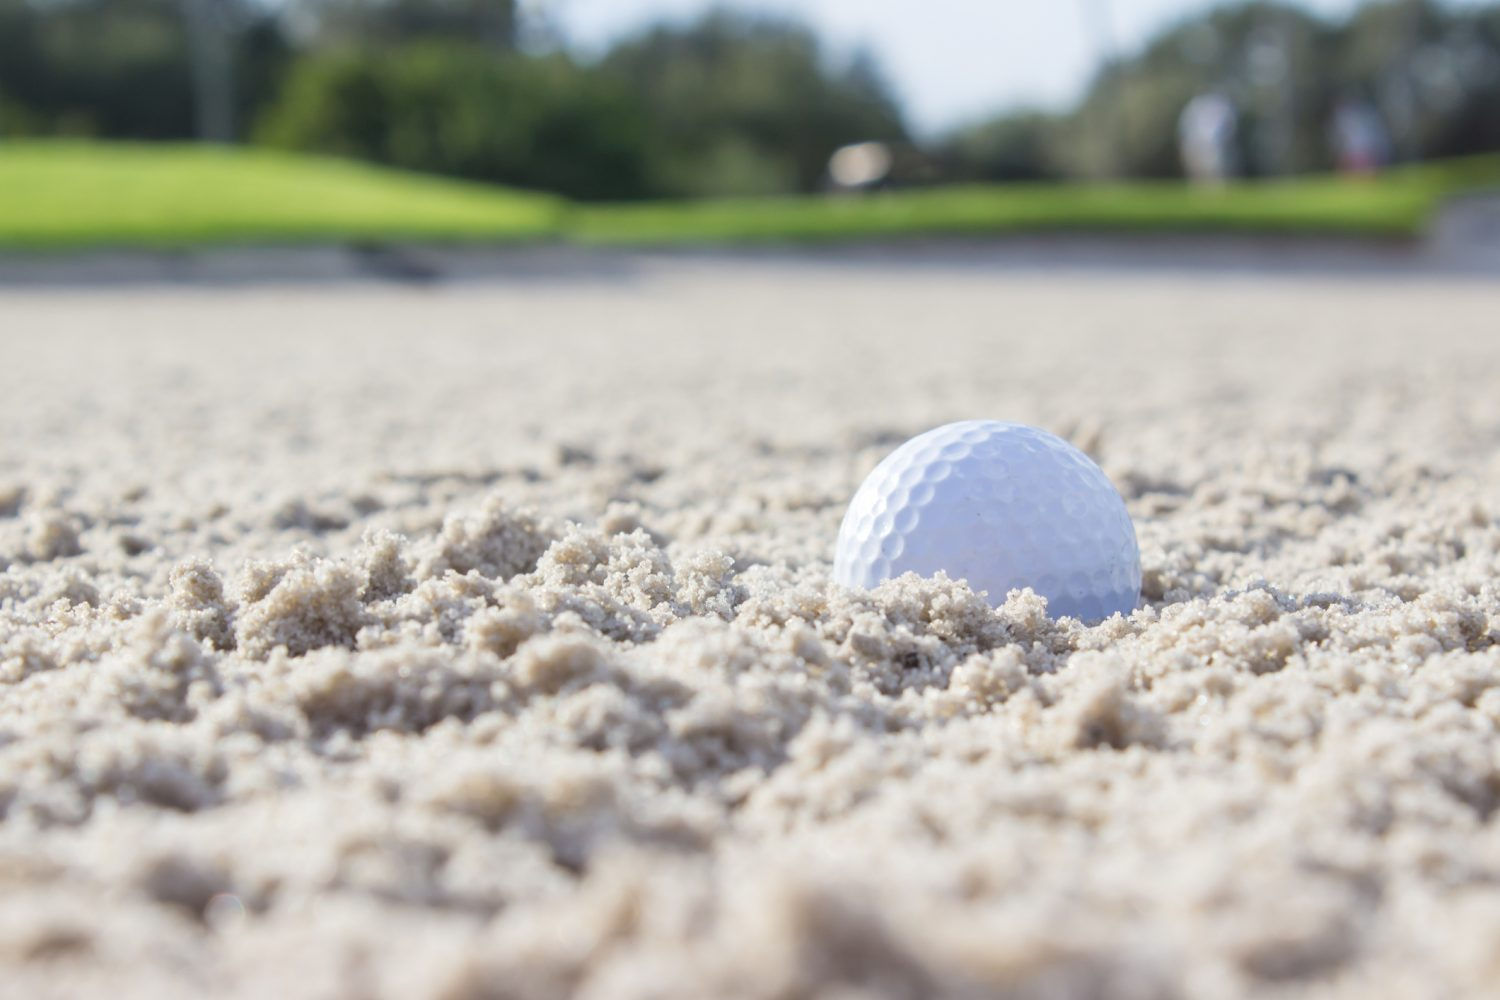 Golf Ball in Sand Trap -Things to do Maui